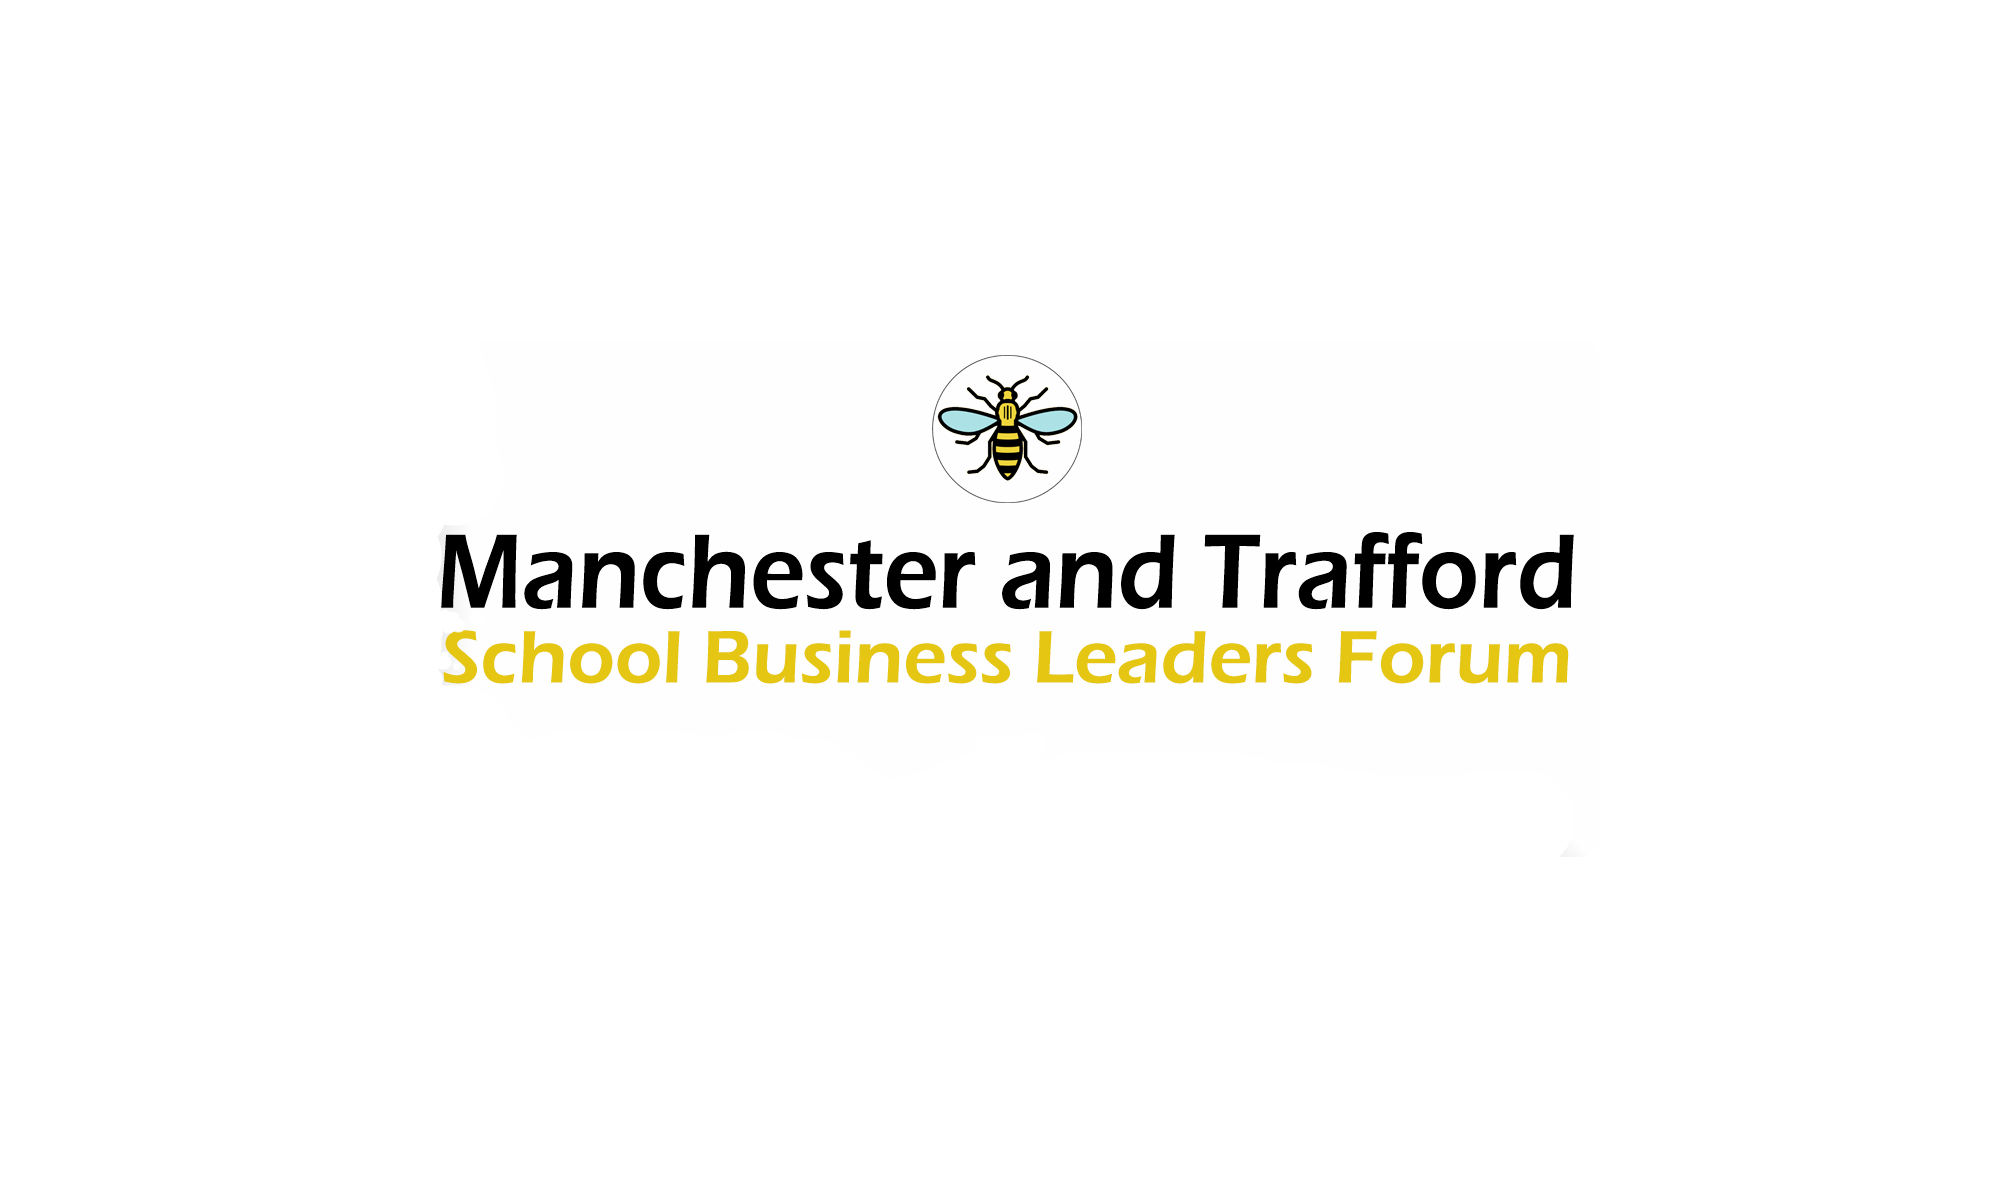 Casserly Property Management Partners with Manchester and Trafford School Business Leaders Forum